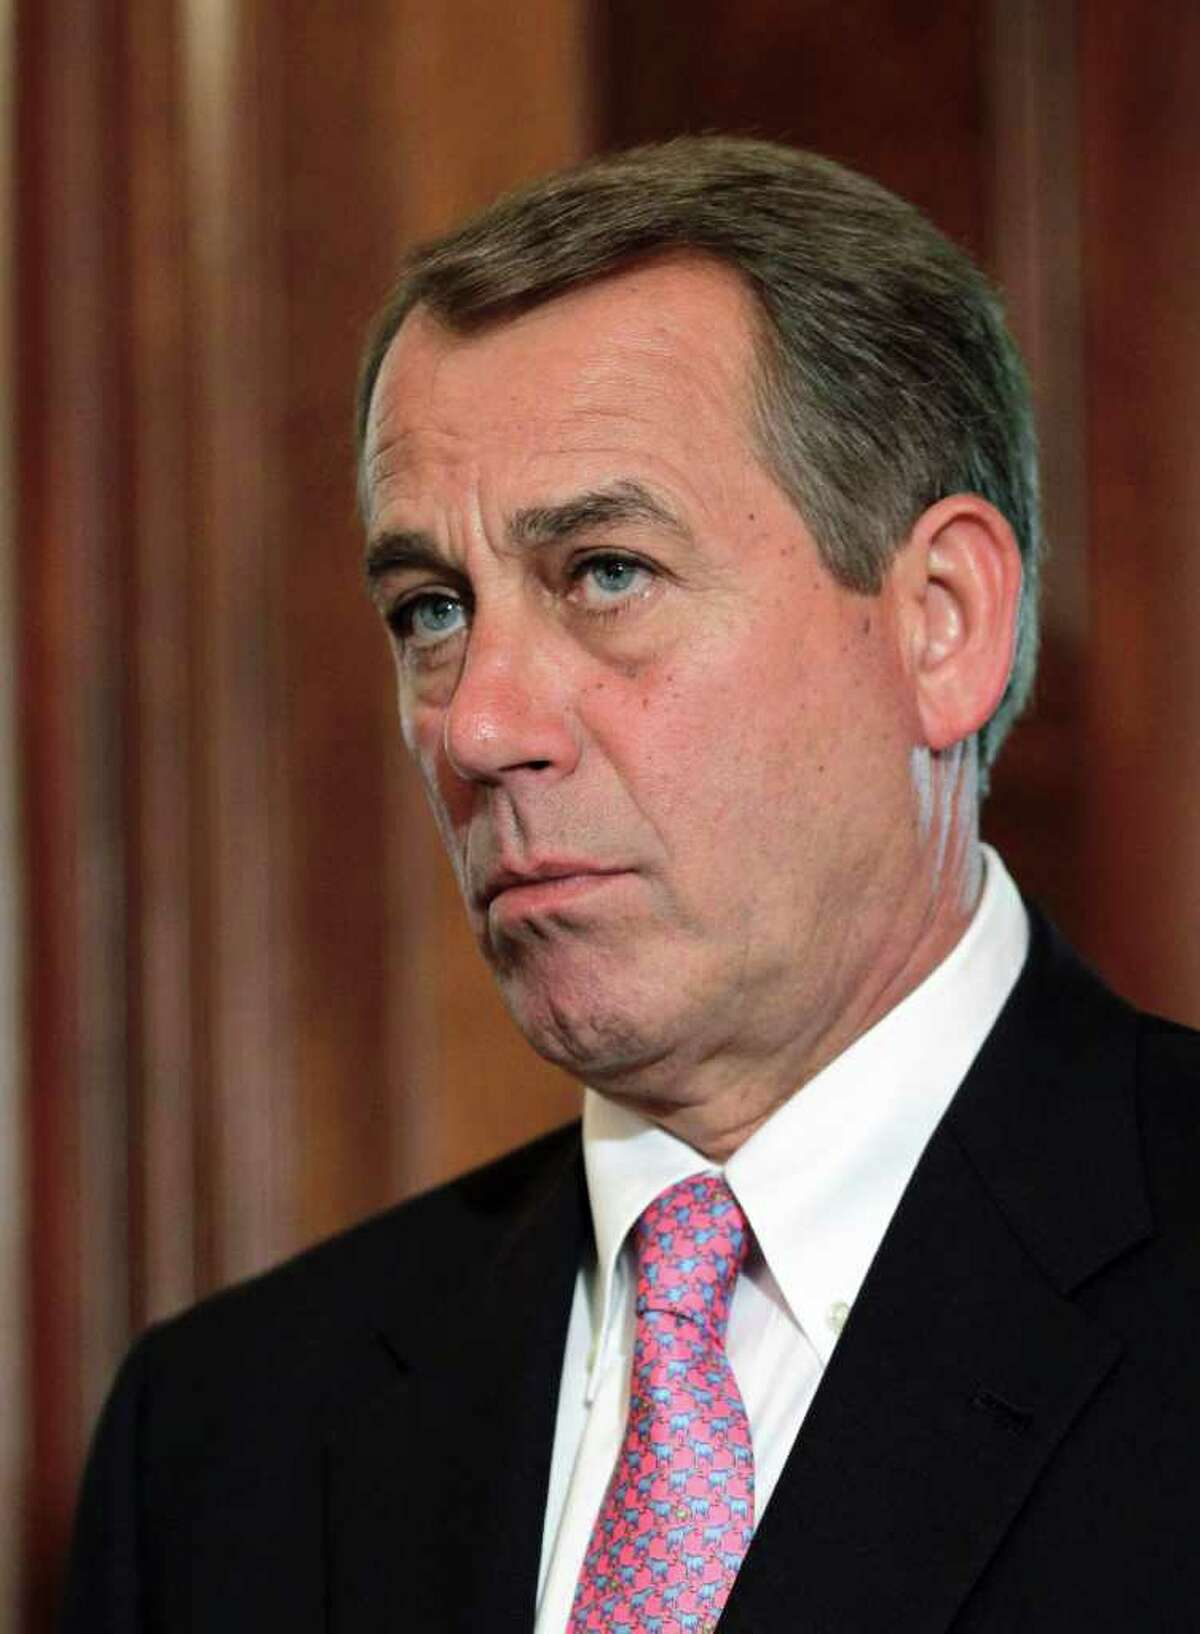 House Speaker John Boehner of Ohio listens on Capitol in Washington, Monday, May 2, 2011, during a news conference where he talked about the operation that took down the mastermind of the Sept. 11, 2001 terror attacks on the U.S. (AP Photo/J. Scott Applewhite)